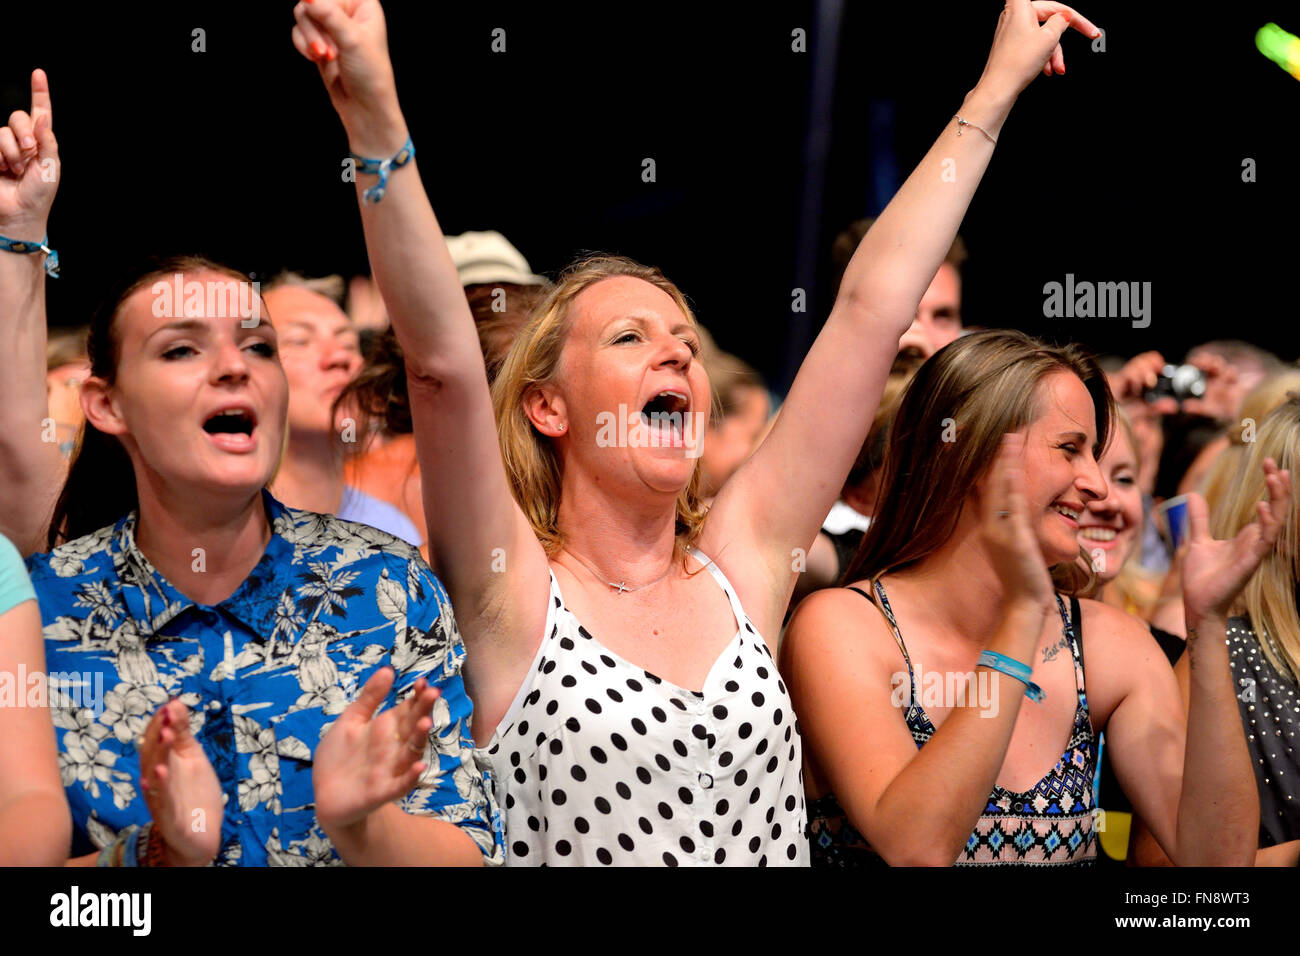 BENICASSIM, SPAIN - JULY 19: Crowd in a concert at FIB Festival on July 19, 2014 in Benicassim, Spain. - Stock Image